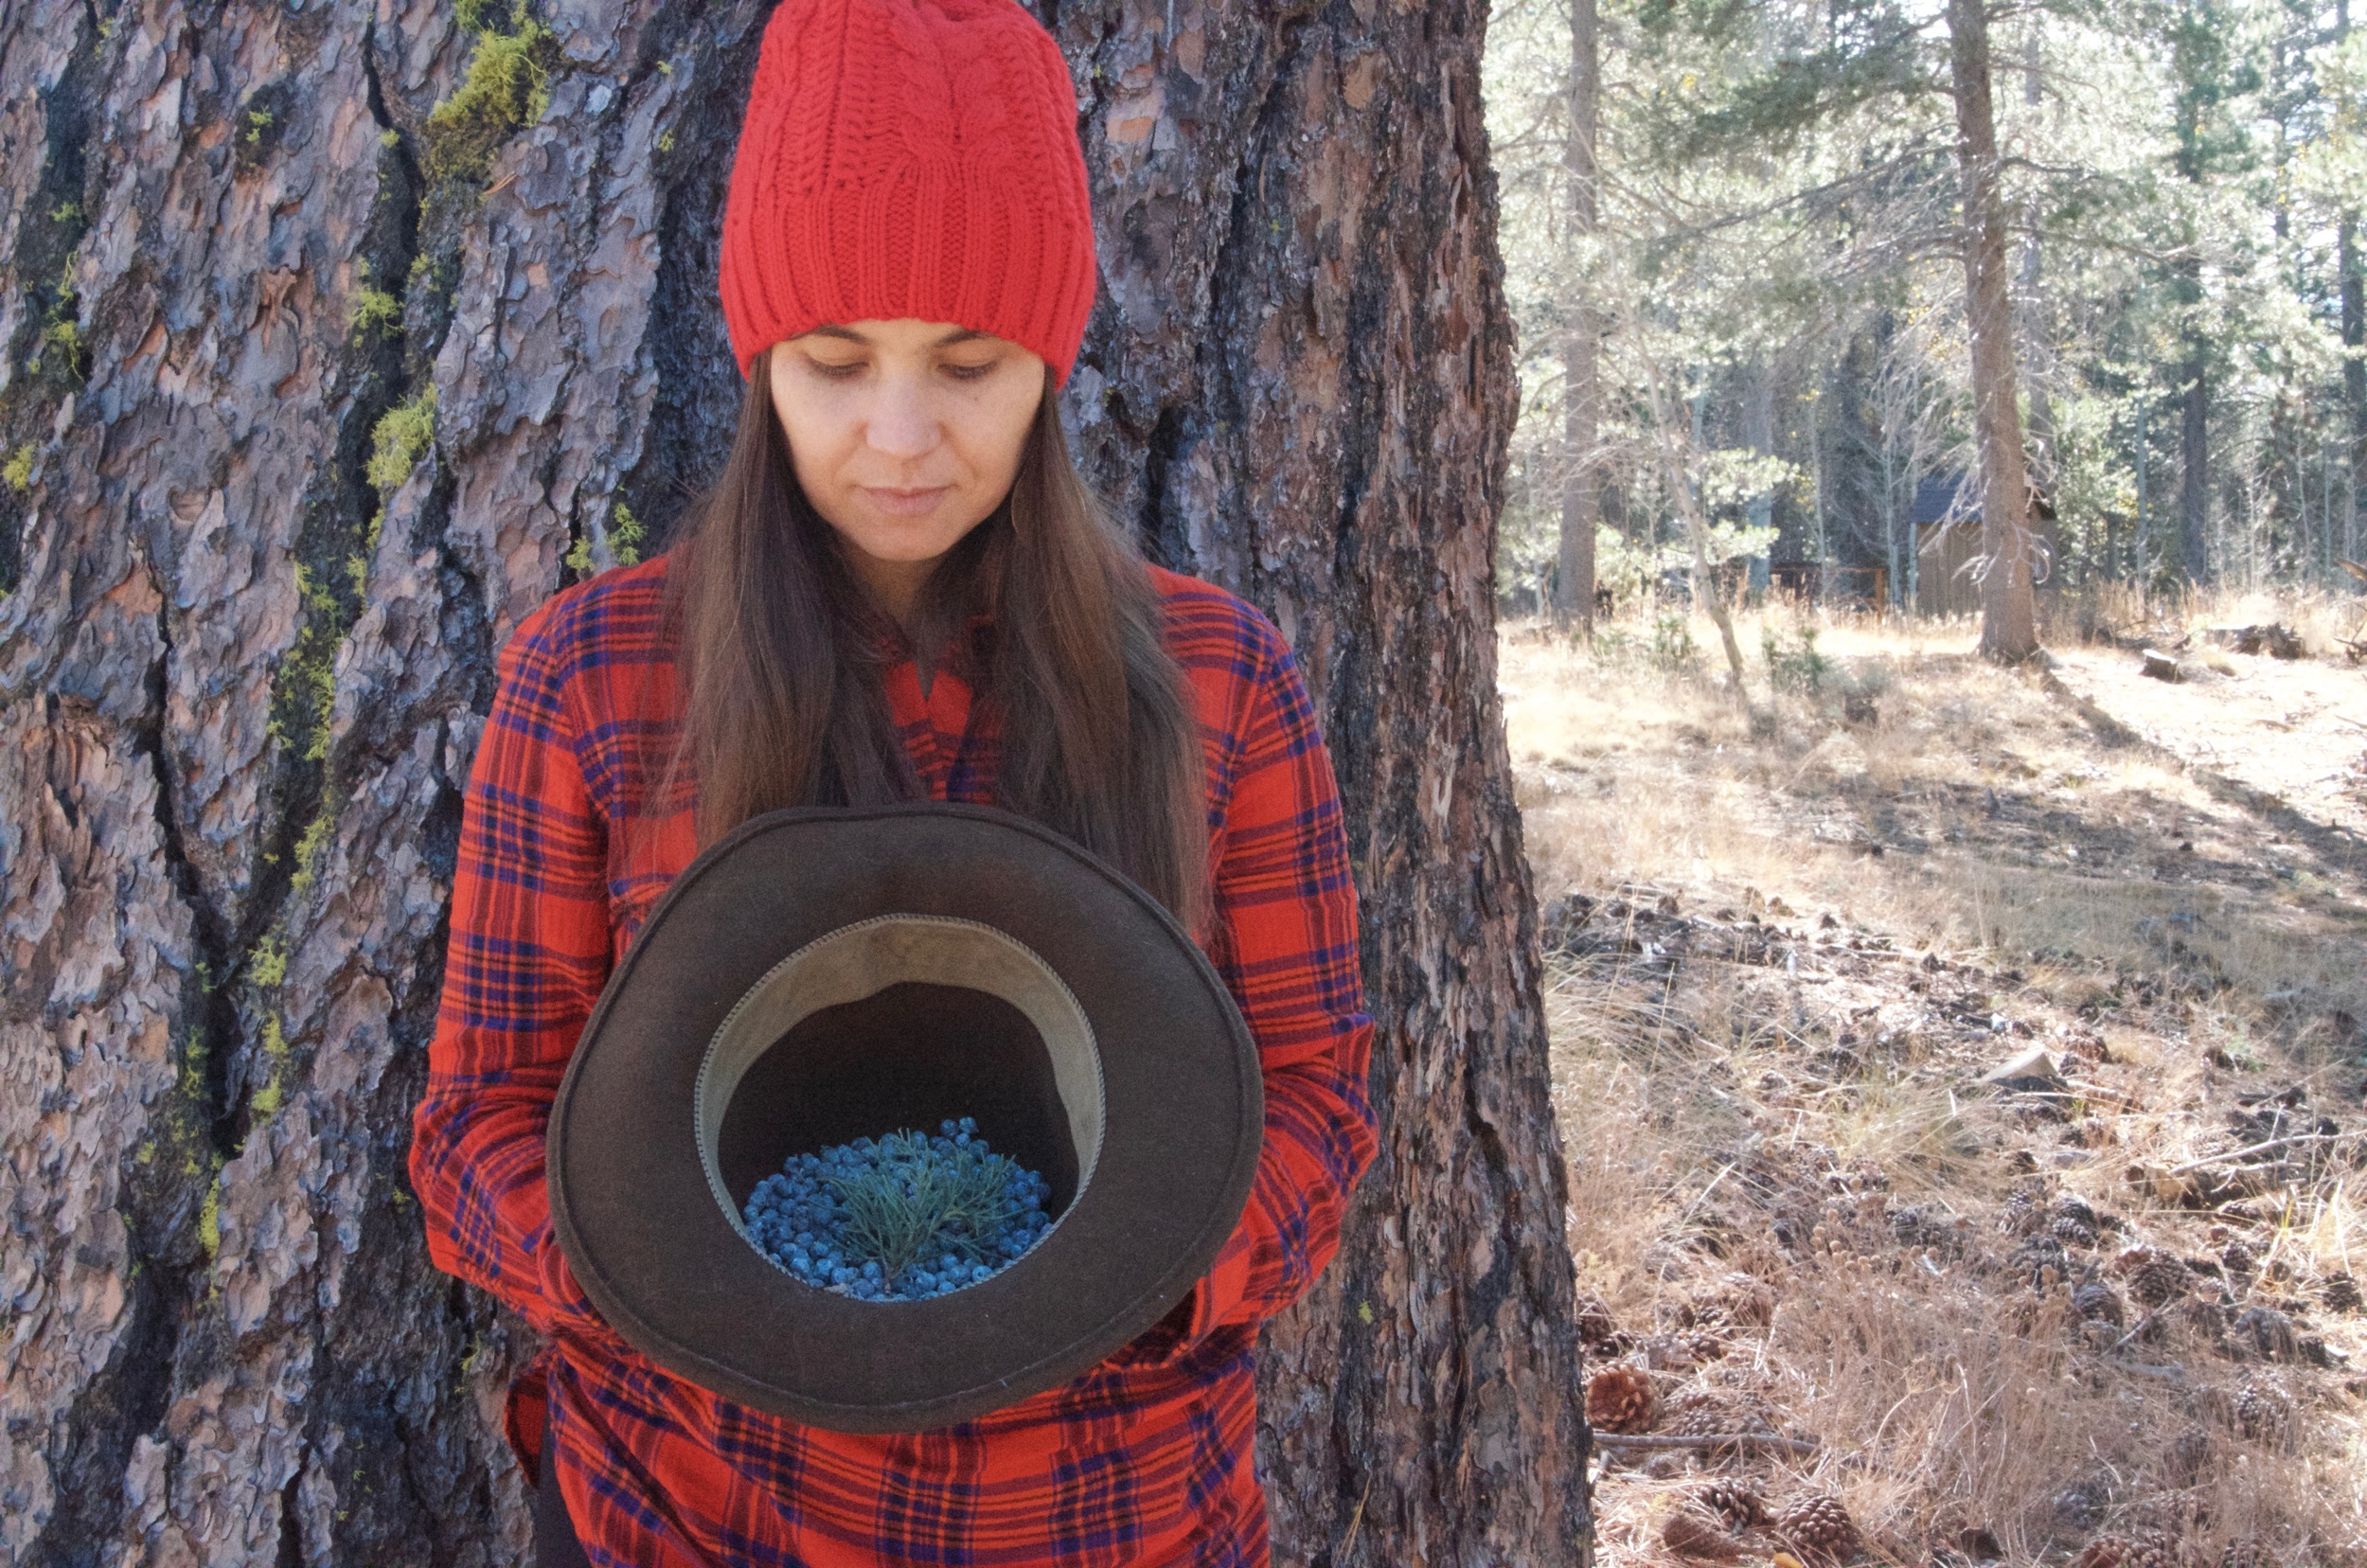 Amber of Aquarian Dawn with some lovely Juniper berries we harvested in her bio-region, or more precisely her home town, her sister's backyard. <3